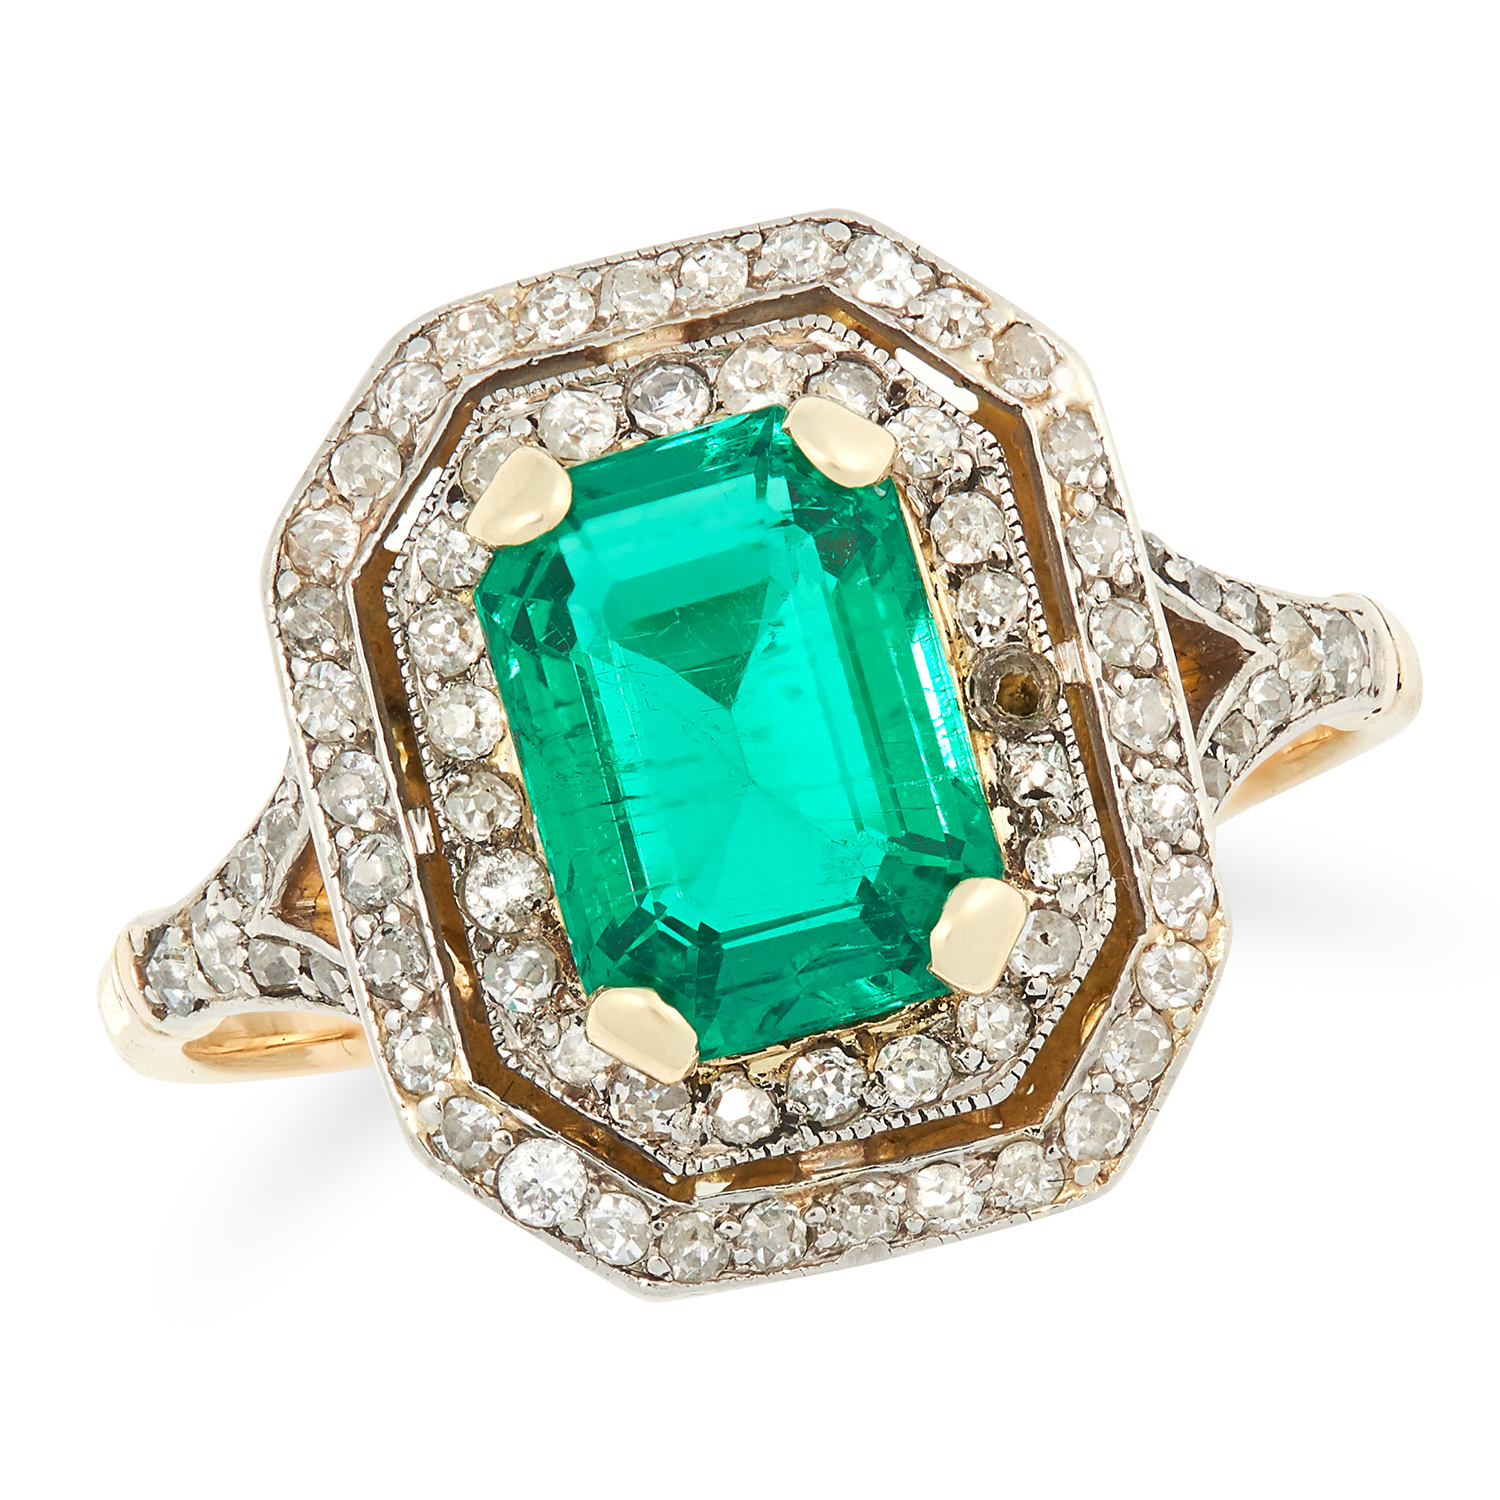 Los 29A - A 1.77 CARAT COLOMBIAN EMERALD AND DIAMOND RING set with a step cut emerald of 1.77 carats encircled